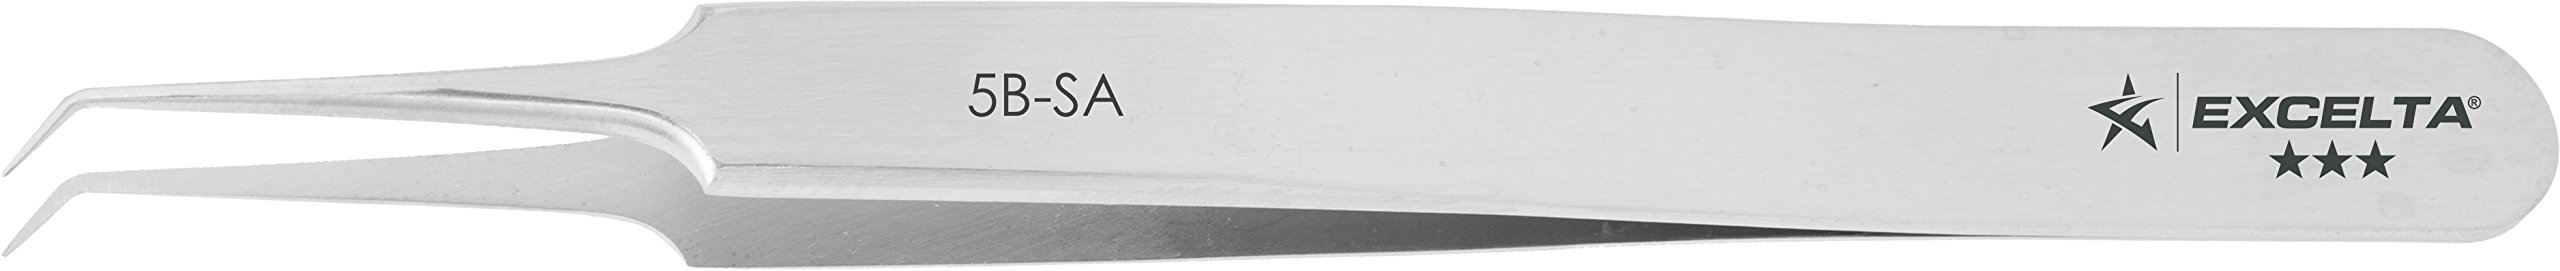 Excelta - 5B-SA - Tweezers - Ultra Fine Point - Bent - Three Star - Anti-Mag. SS, 0.06'' Height, 0.375'' Wide, 4.25'' Length by Excelta